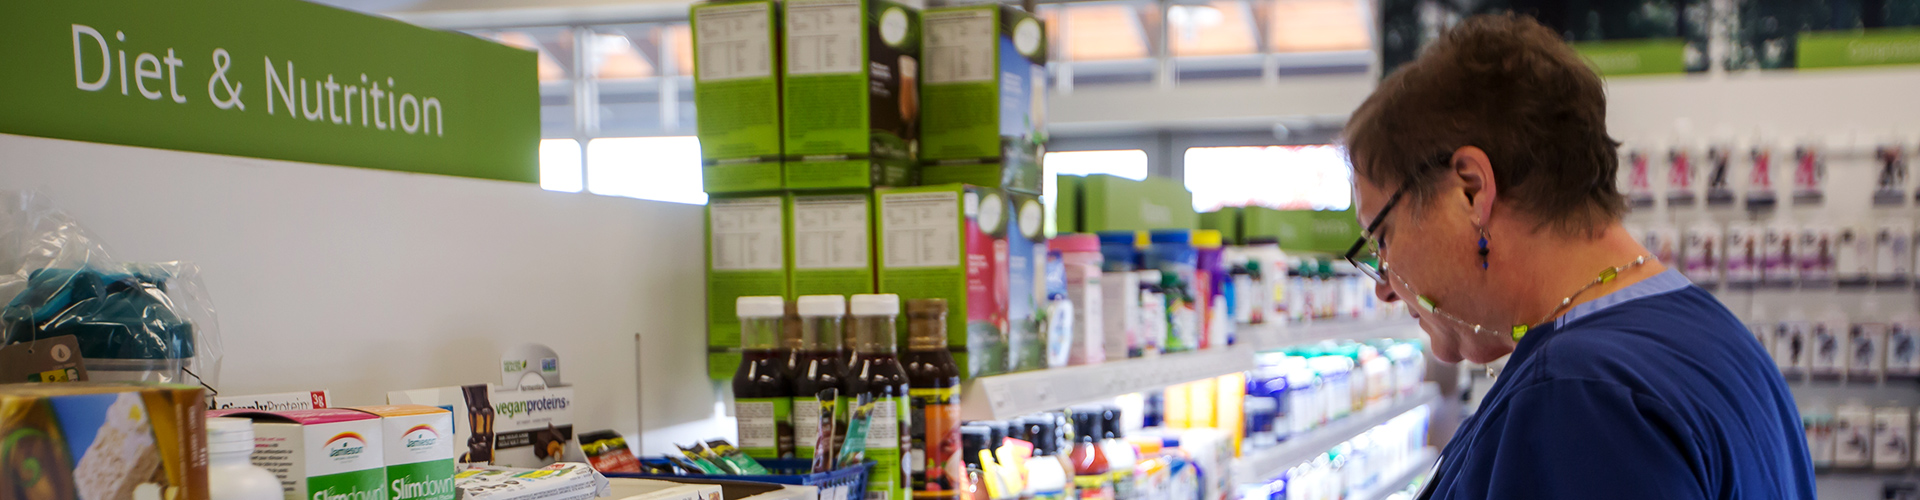 We carry a wide range of Health, Nutrition & Beauty Products